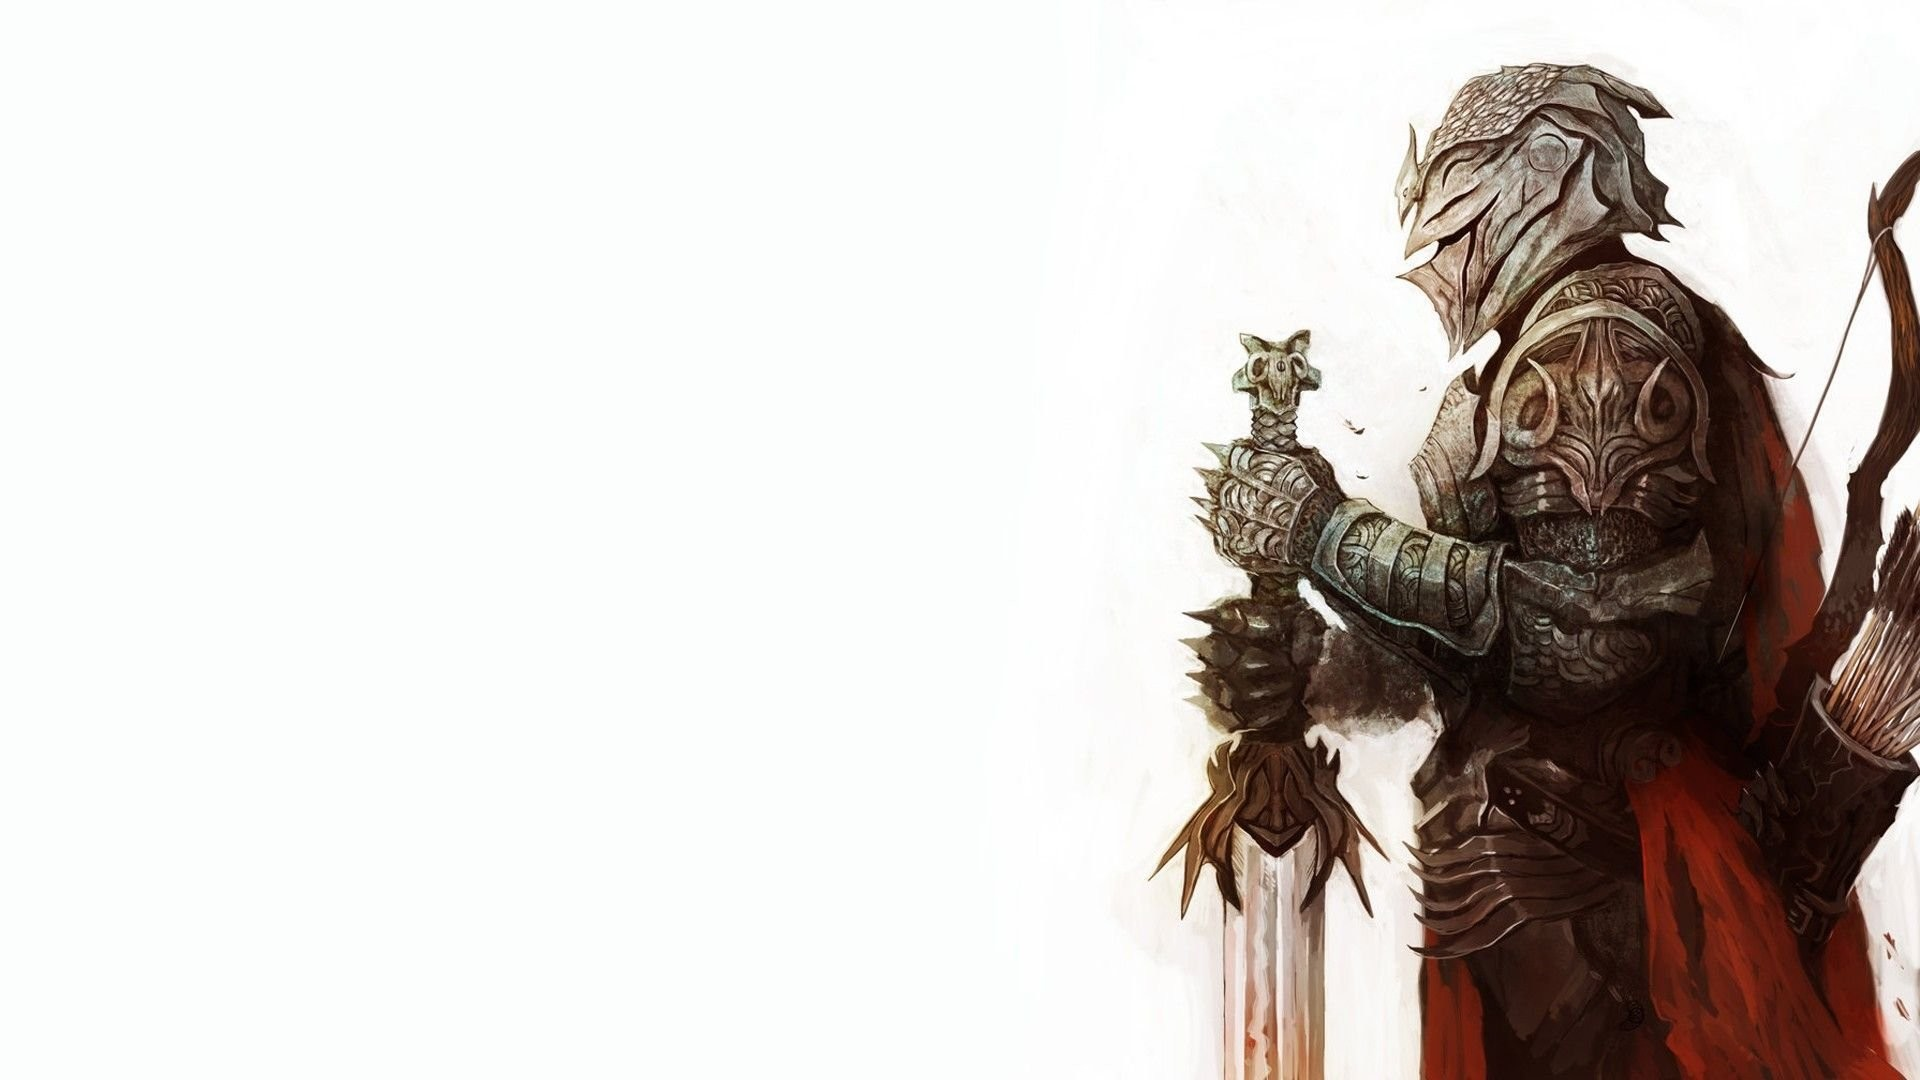 Knight Sword Wallpaper For Iphone #sgD 1920x1080